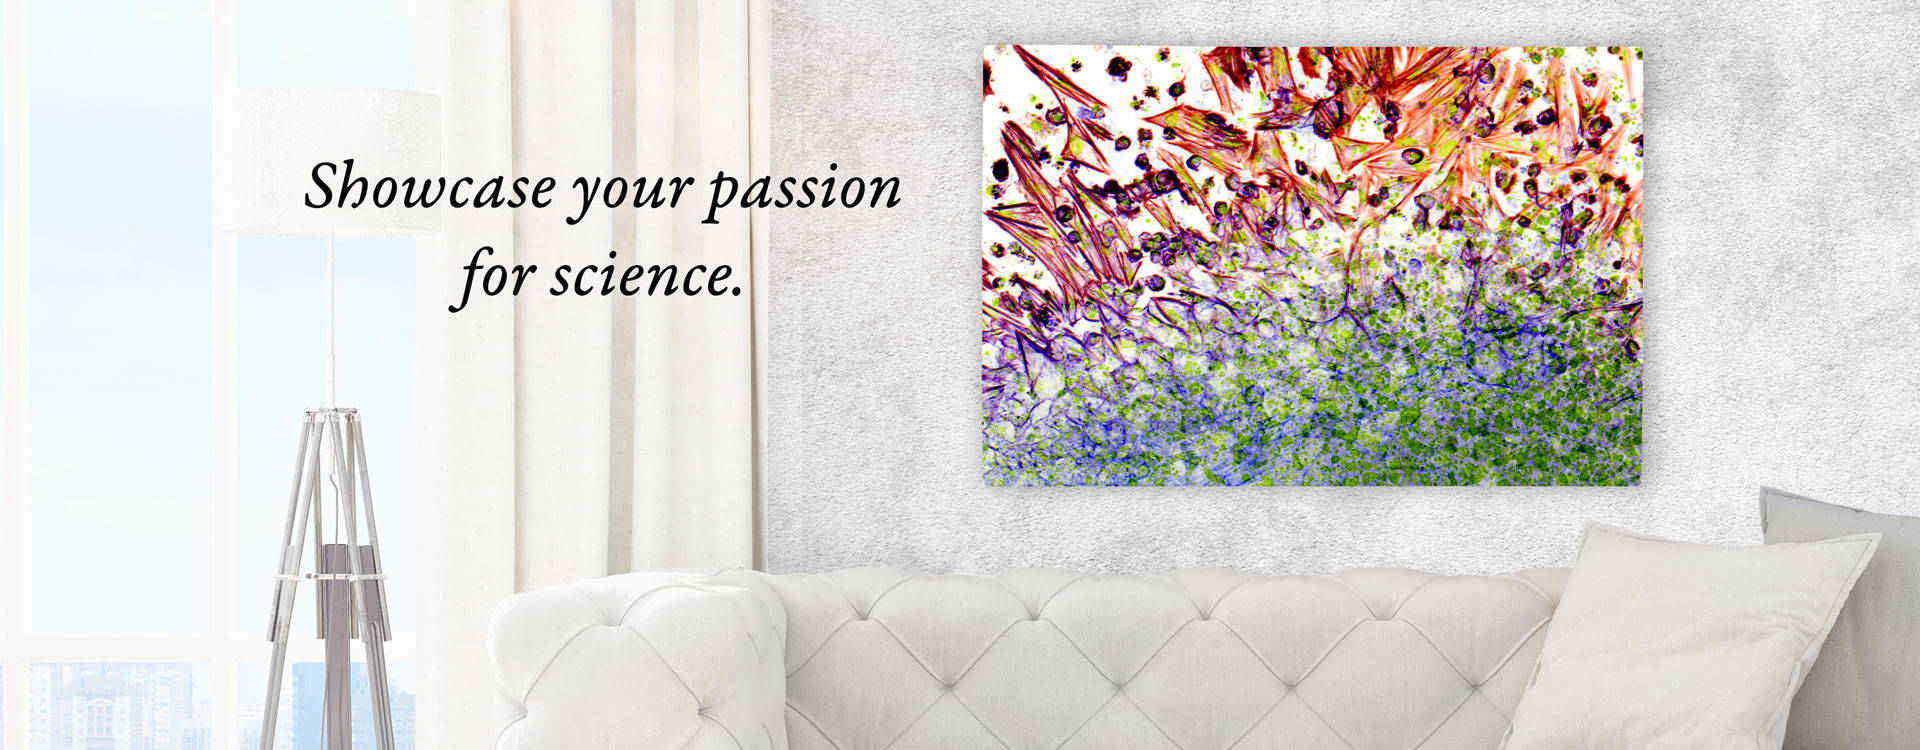 Showcase you passion for science with biology canvas prints.